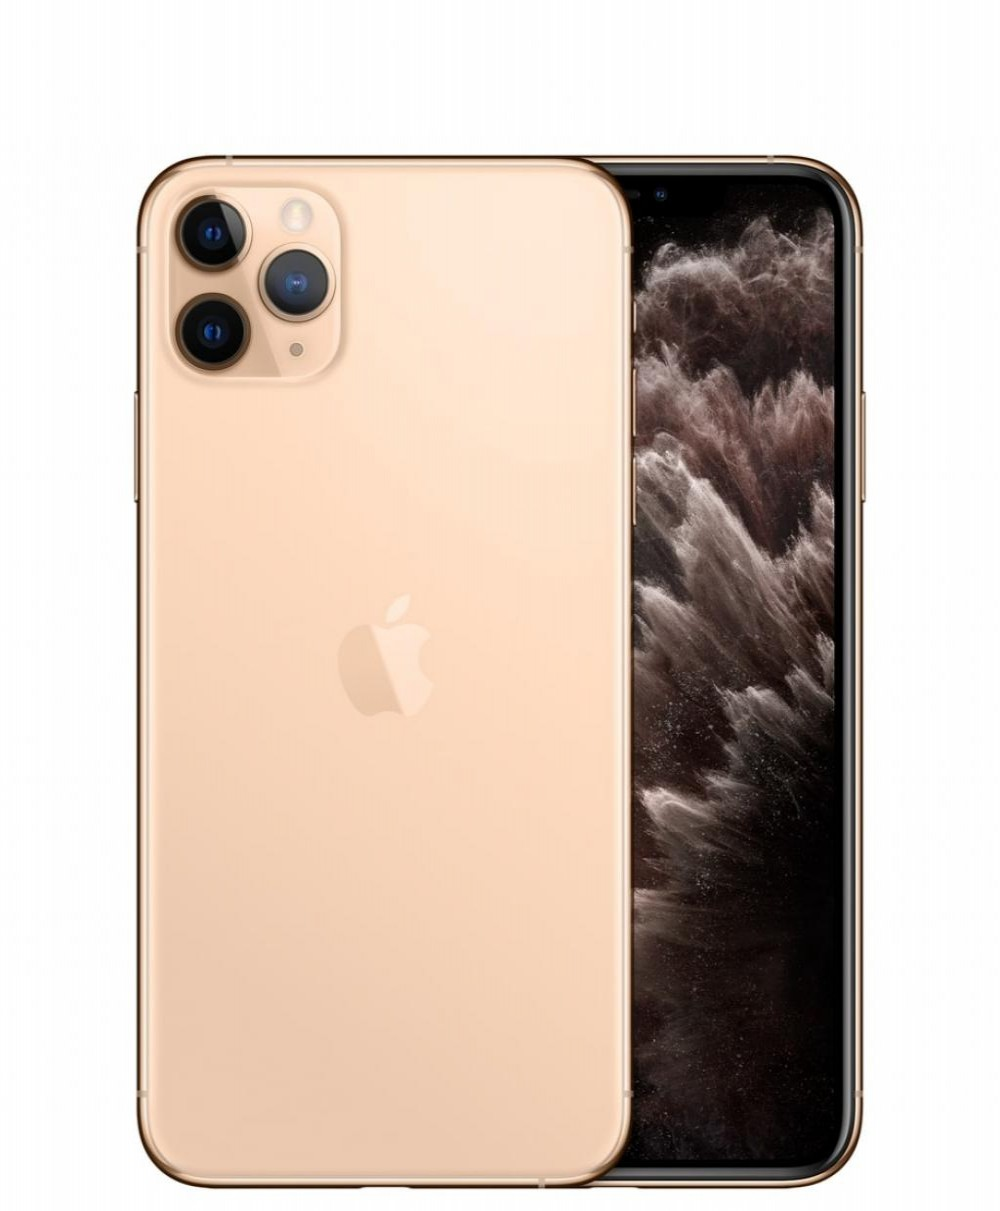 Celular Apple Iphone 11 Pro Max 256GB A2218 Gold BZ